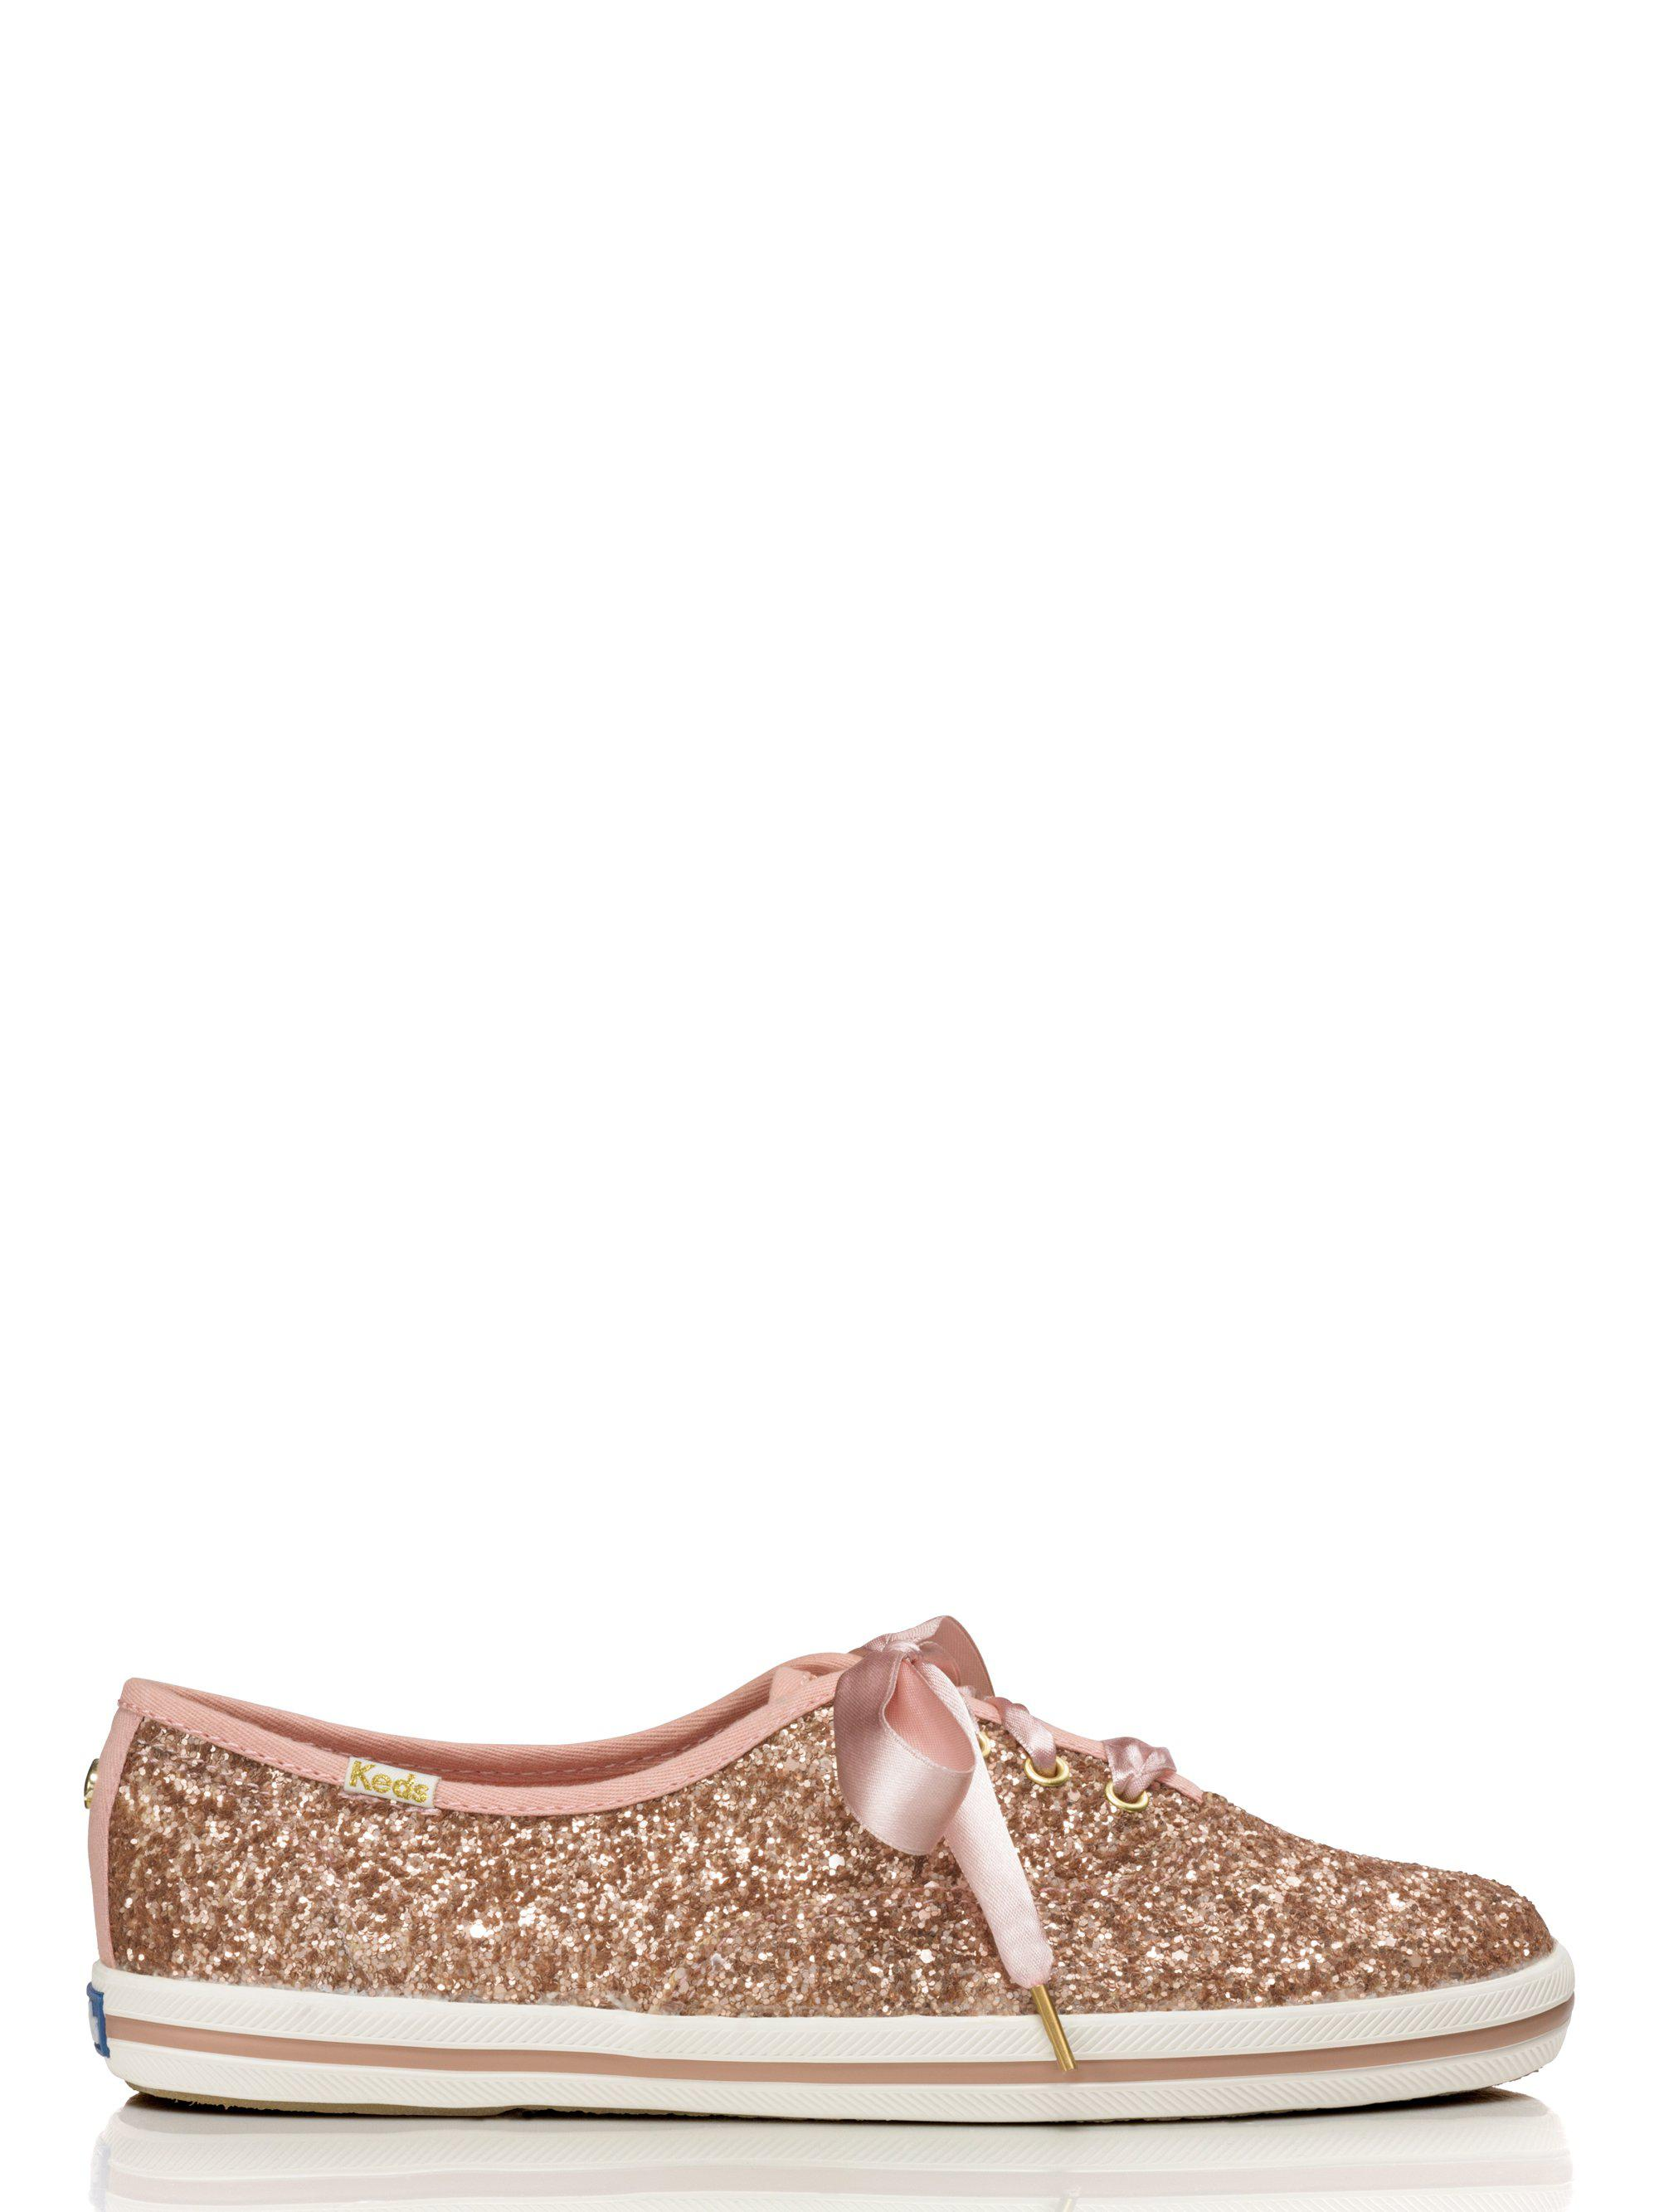 974d2e99d582 Lyst - Kate Spade Keds X New York Glitter Sneakers in Pink - Save 31%